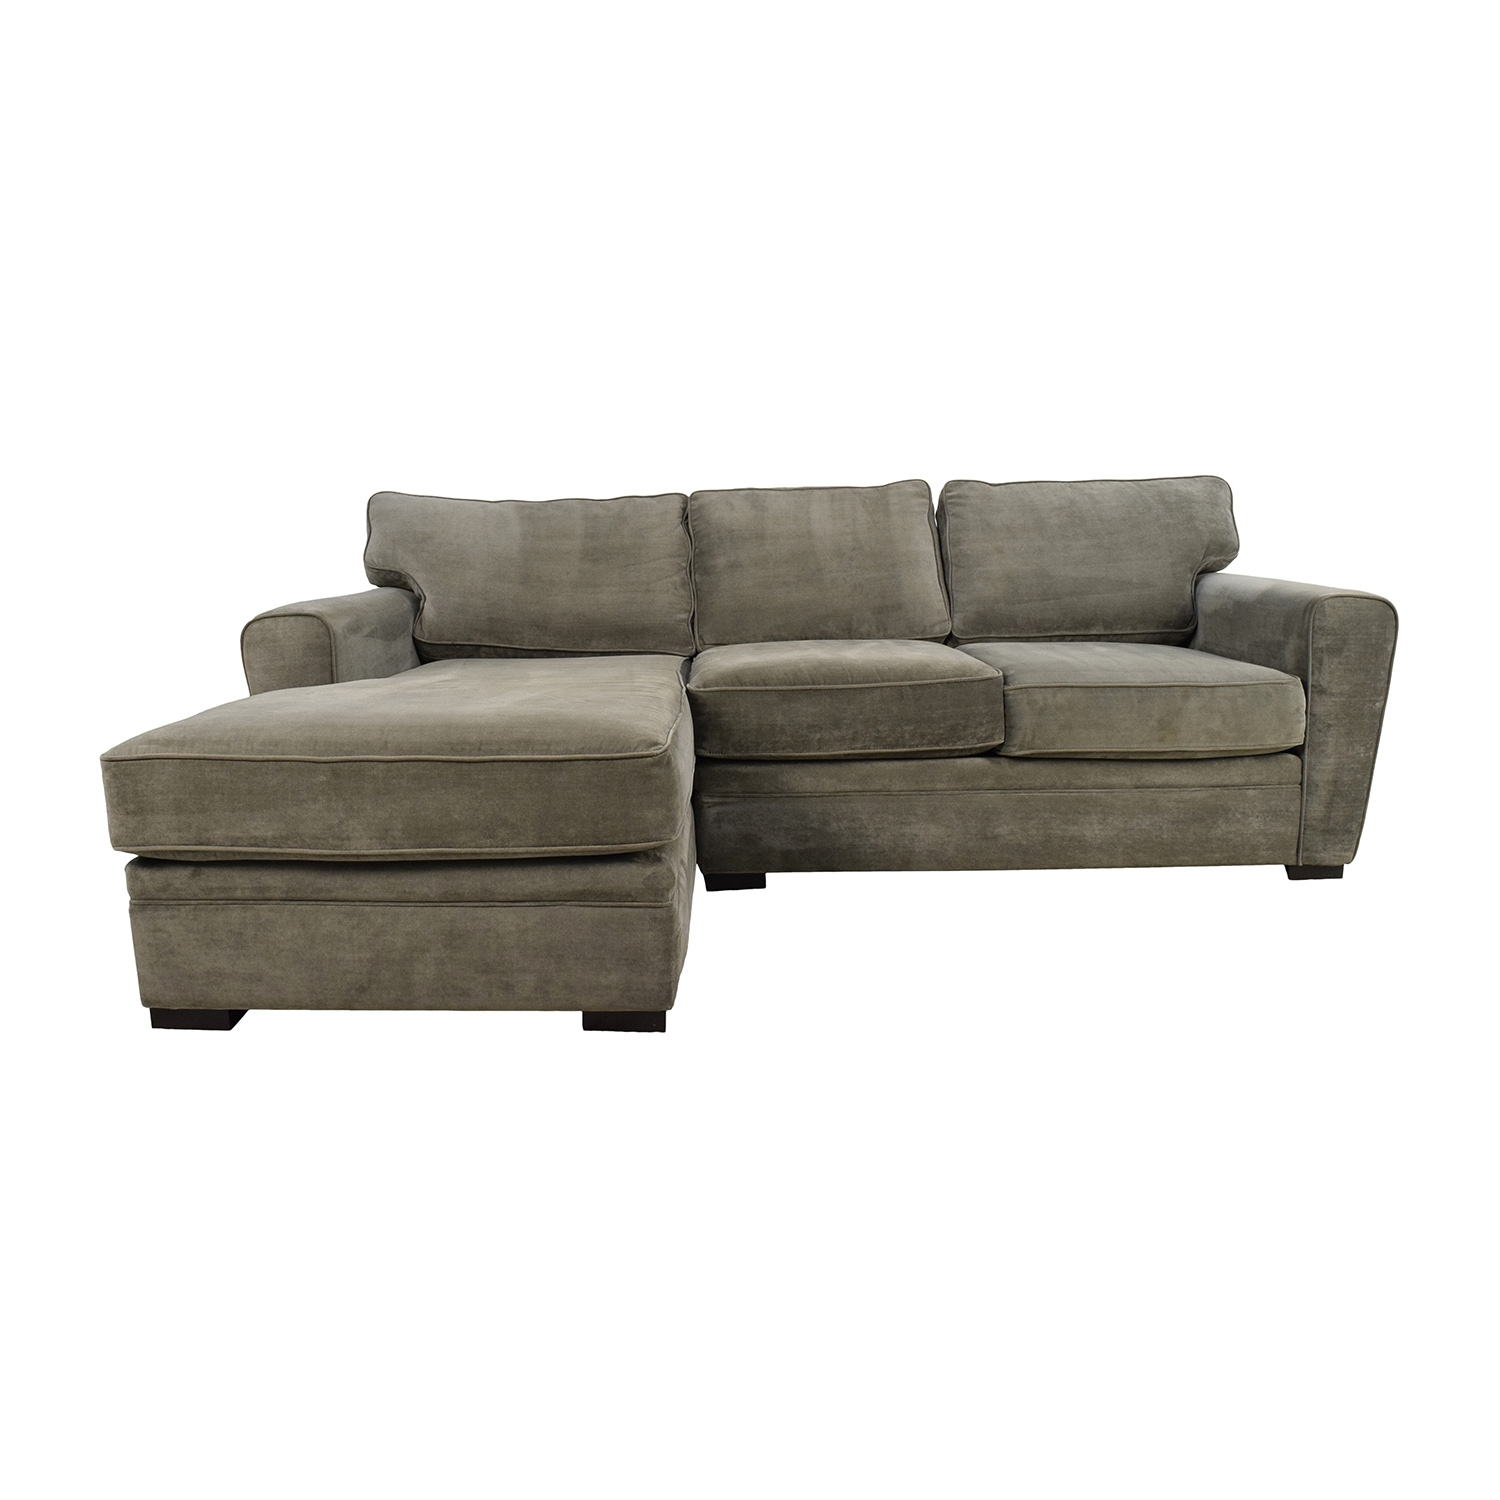 58% Off - Raymour And Flanigan Raymour & Flanigan Grey Sectional / Sofas within Sectional Sofas At Raymour And Flanigan (Image 1 of 15)